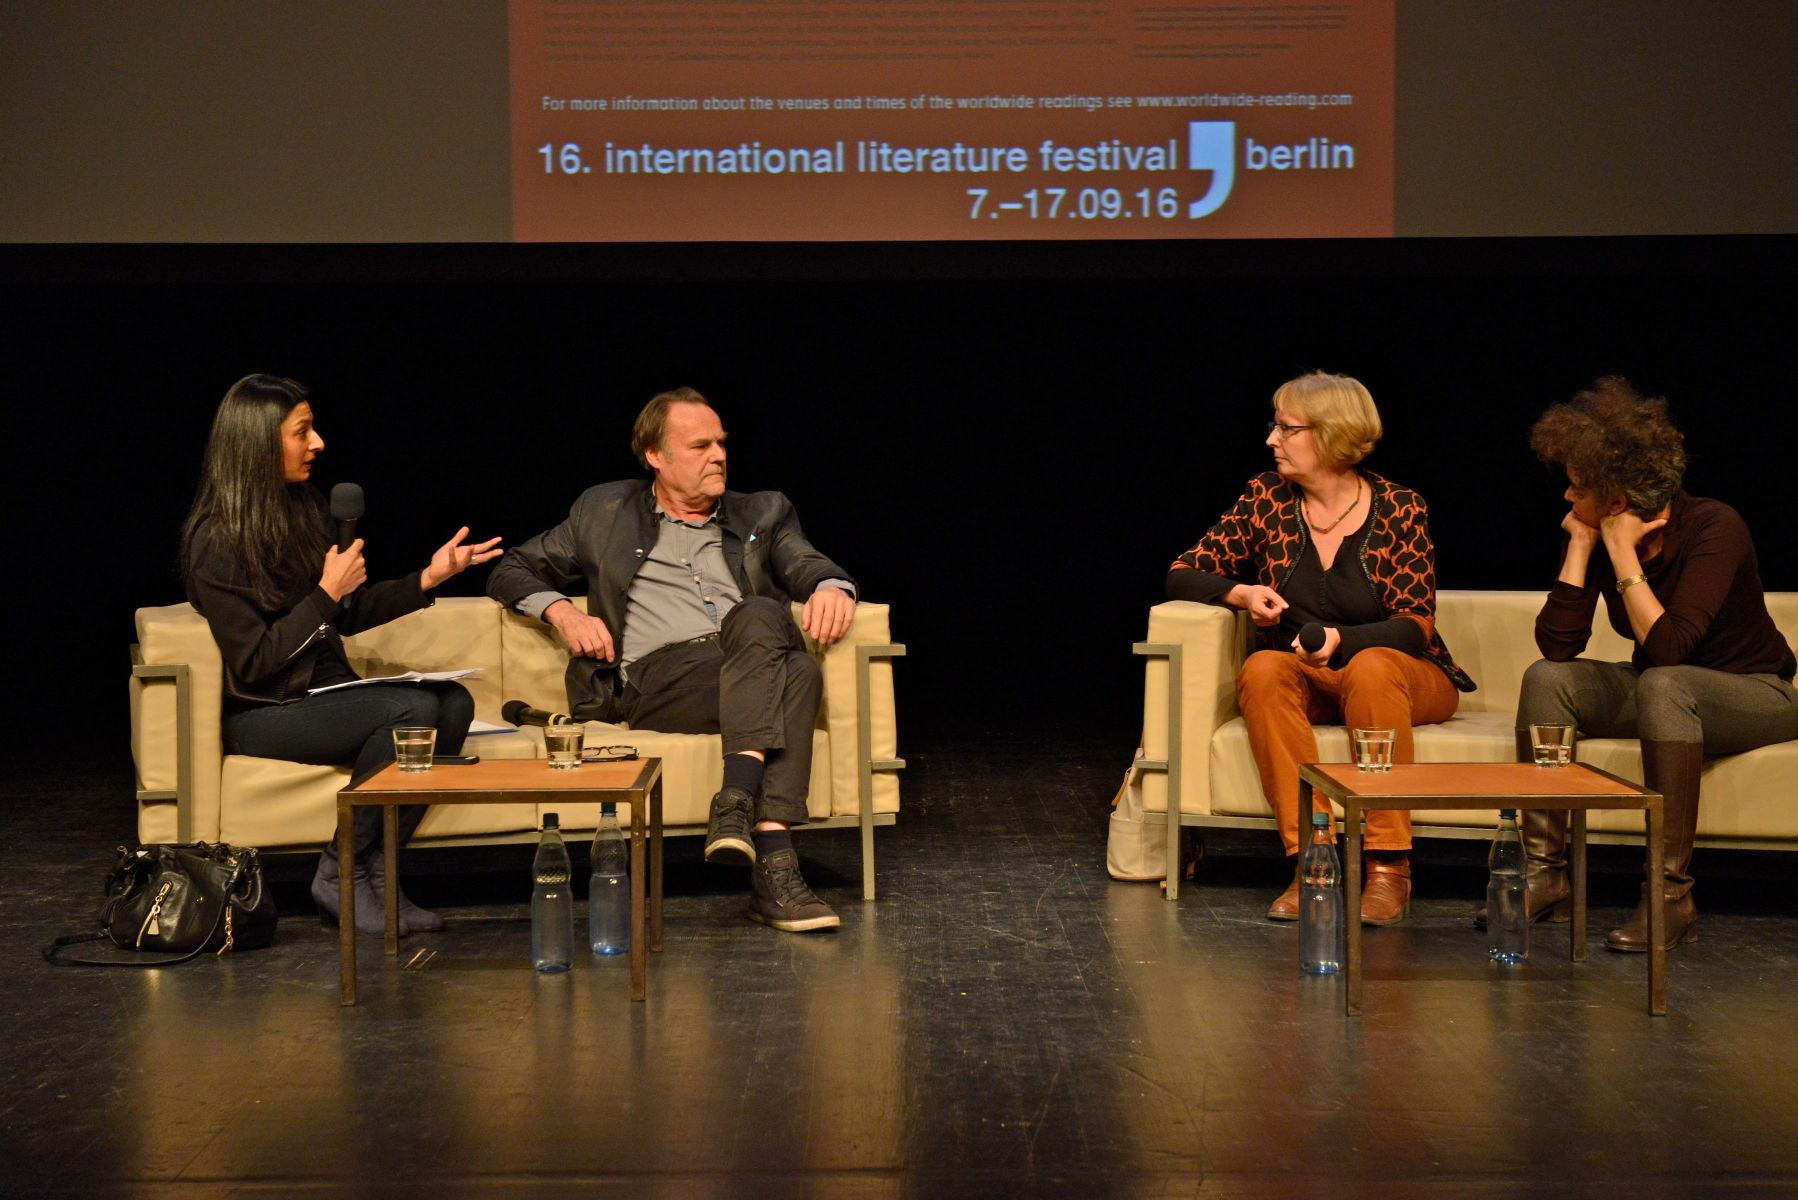 Germany- internationales literaturfestival berlin